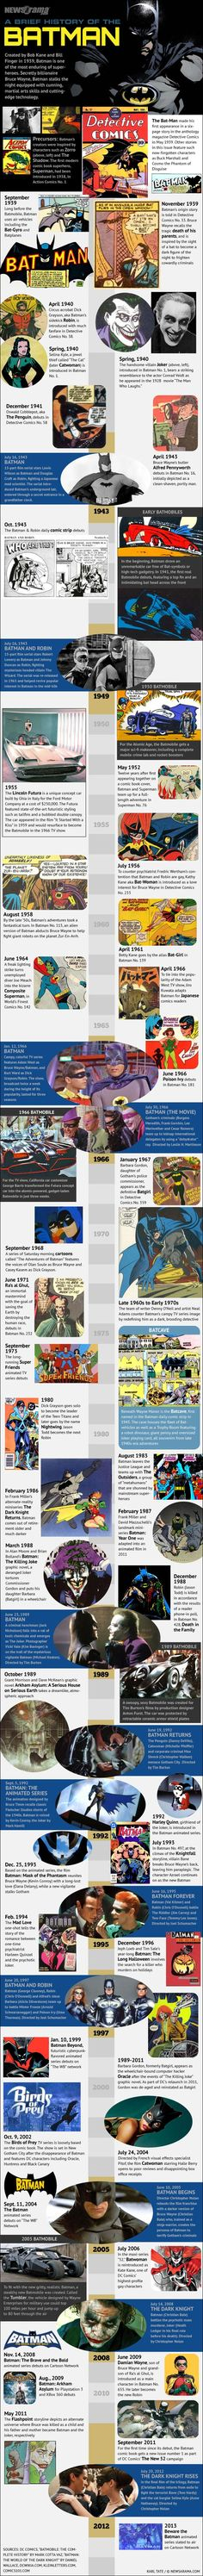 Pretty much the entire history of batman